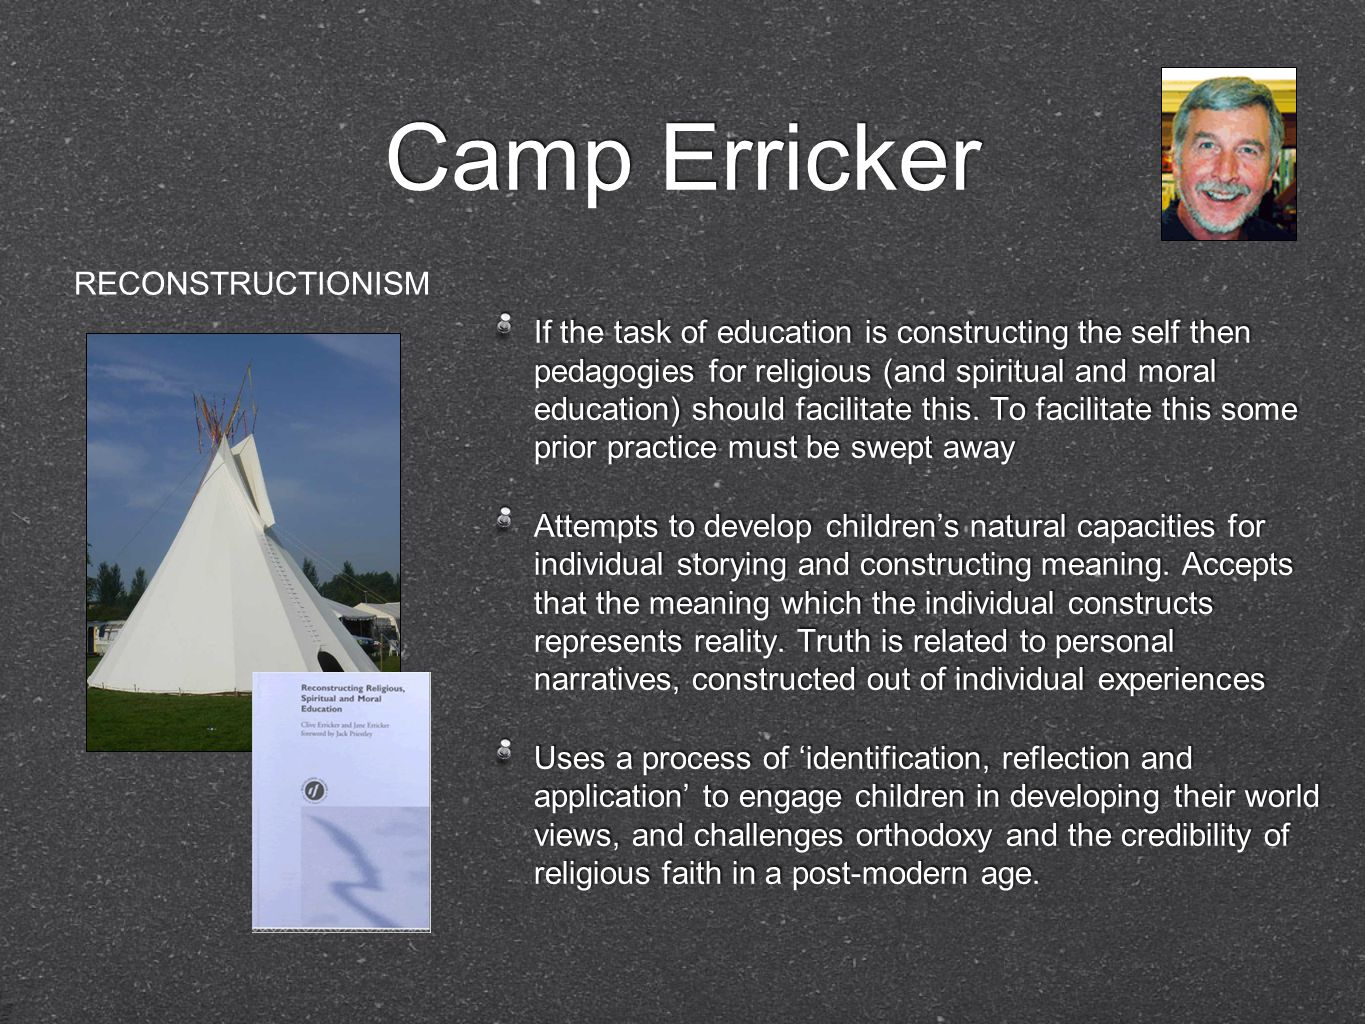 Camp Erricker If the task of education is constructing the self then pedagogies for religious (and spiritual and moral education) should facilitate this.